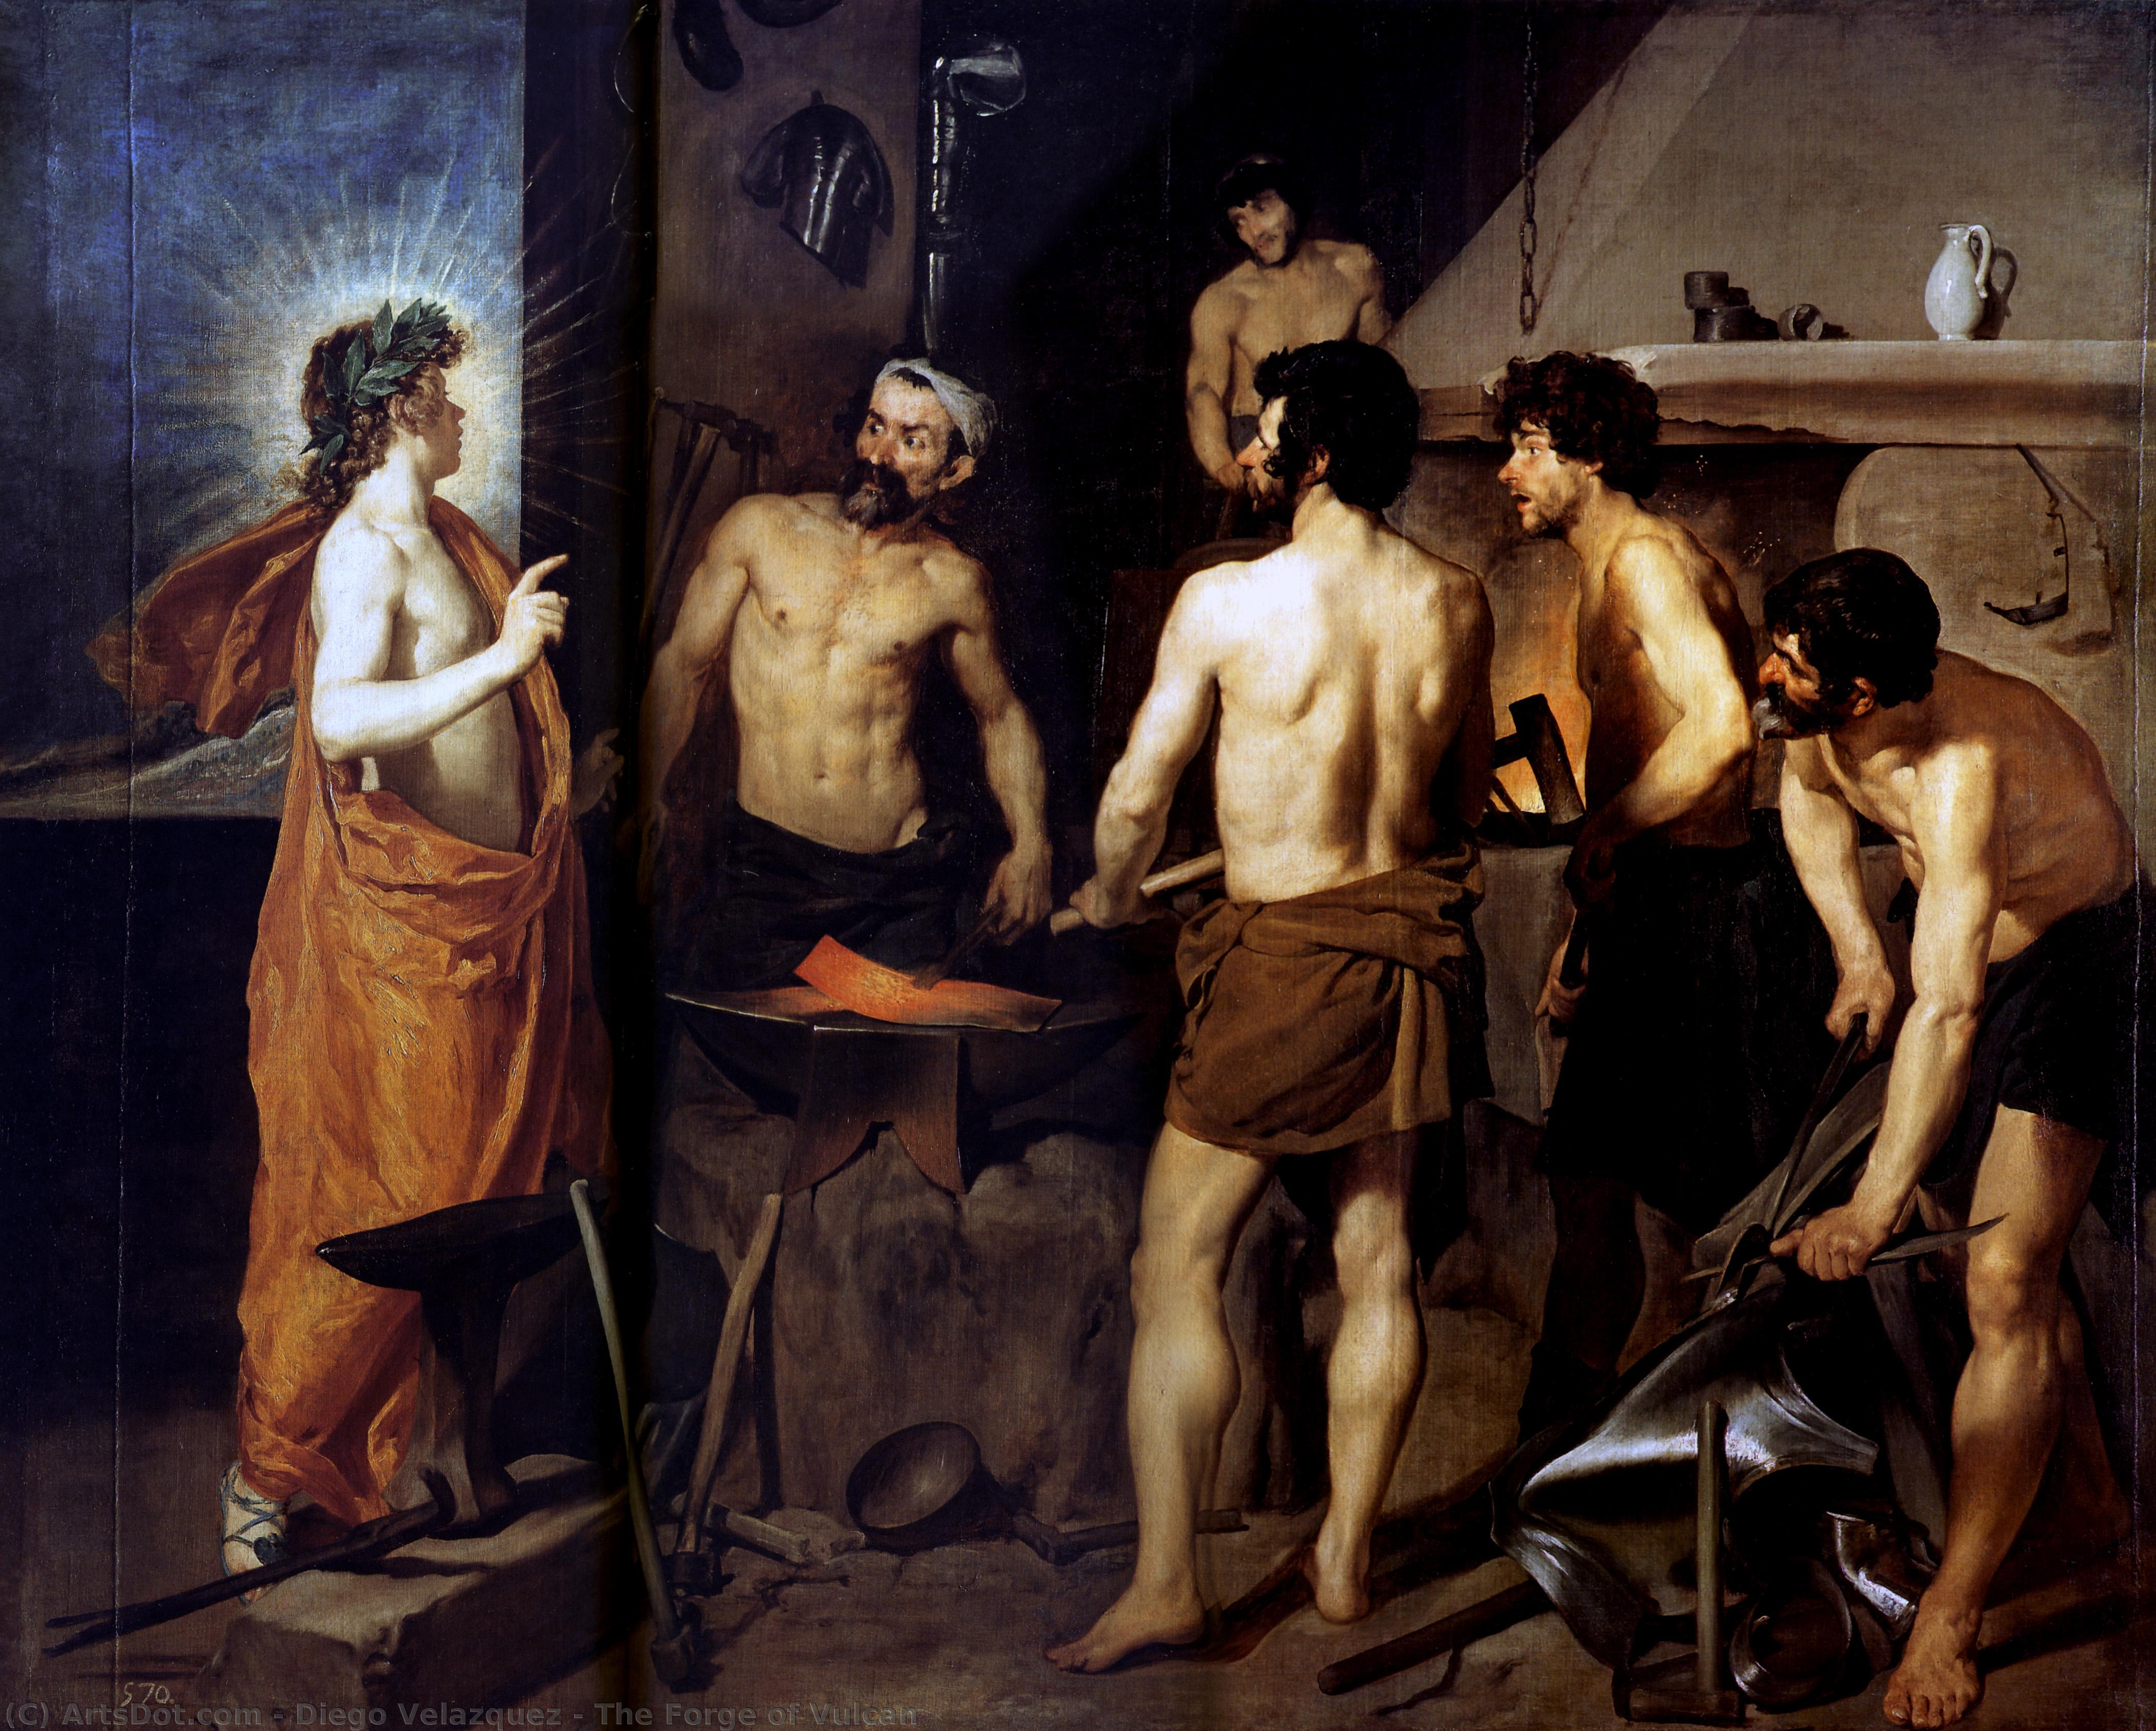 Wikioo.org - The Encyclopedia of Fine Arts - Painting, Artwork by Diego Velazquez - The Forge of Vulcan